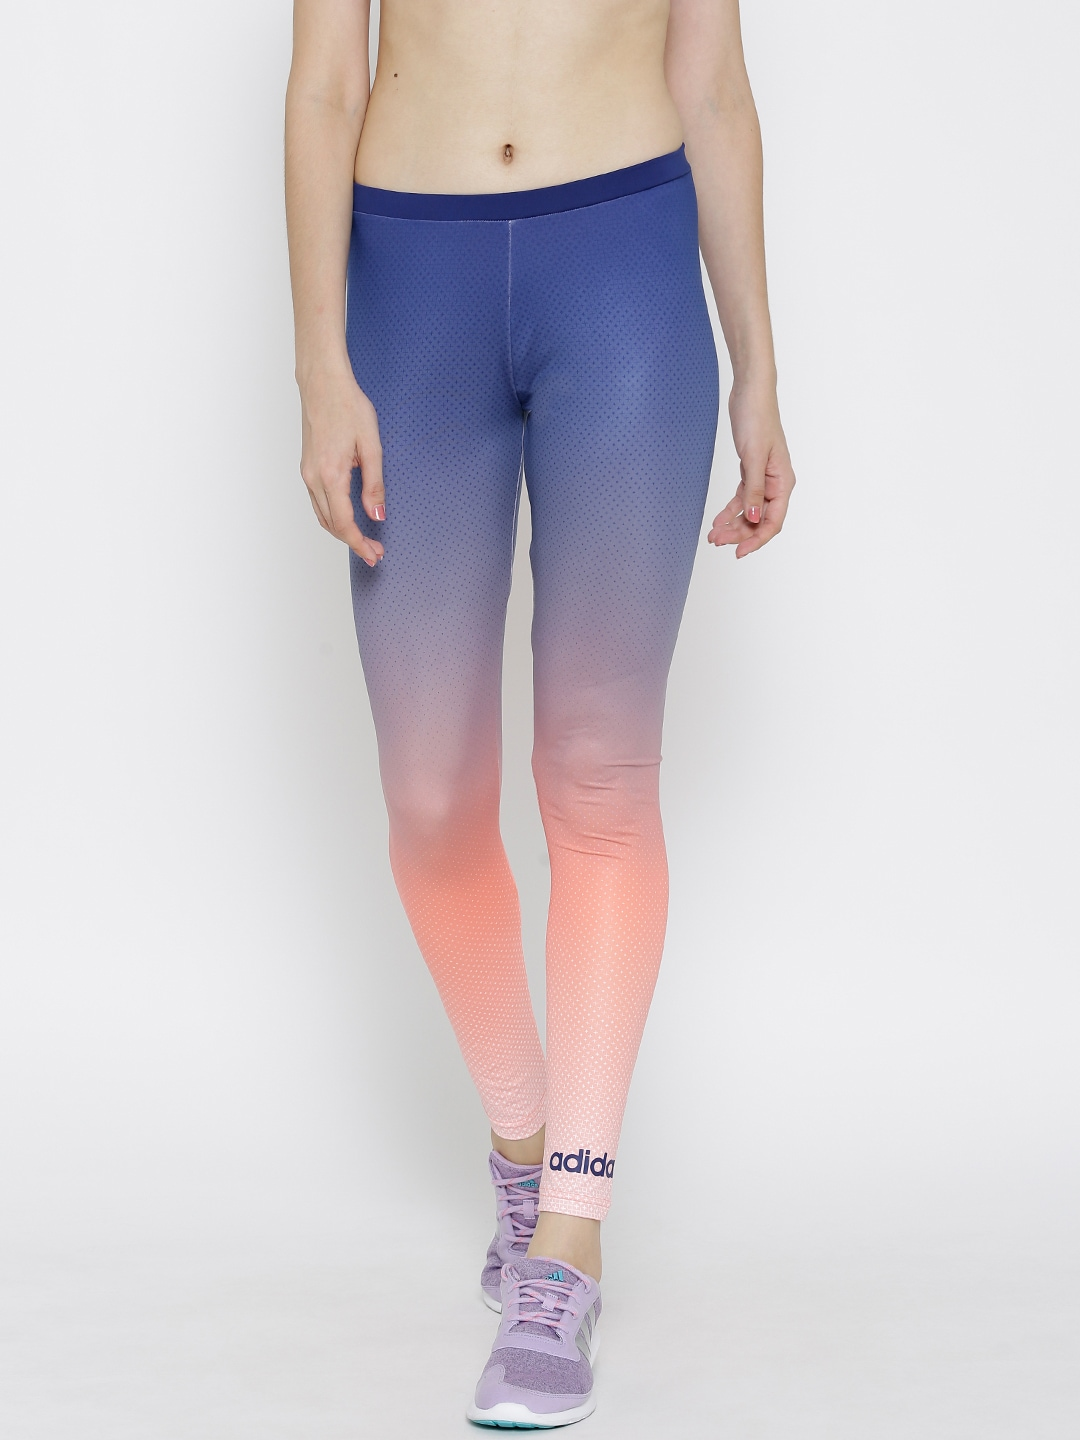 b66bc5f2e845e Adidas neo ay5847 Blue And Peach Coloured Std Ombre Dyed Printed Tights-  Price in India